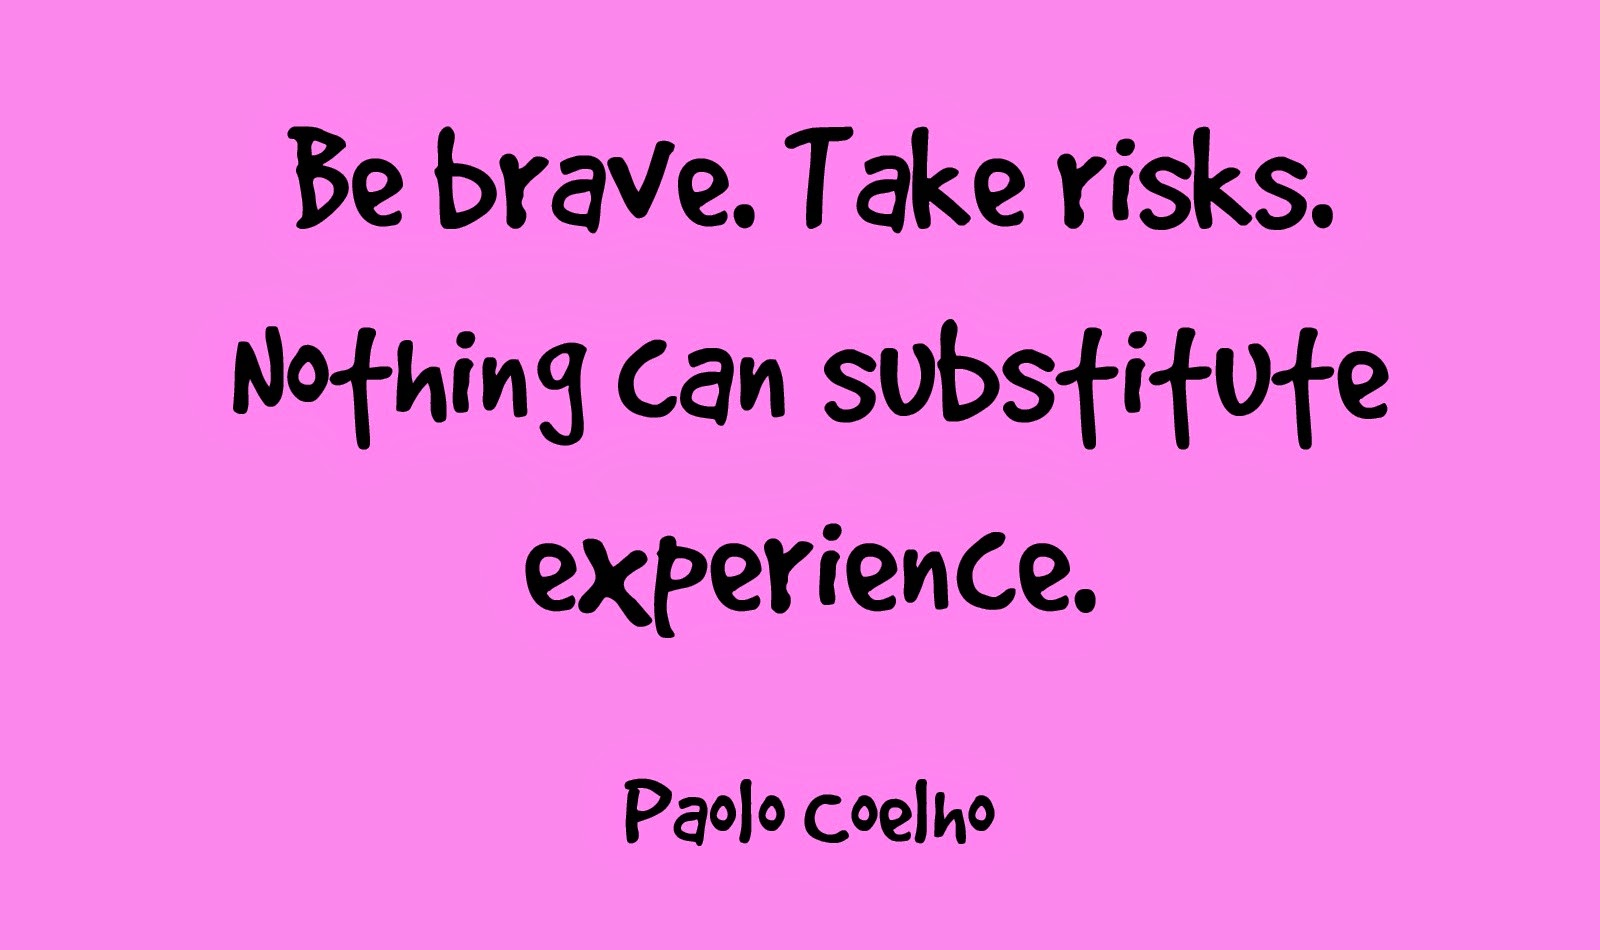 Paolo Coelho quote